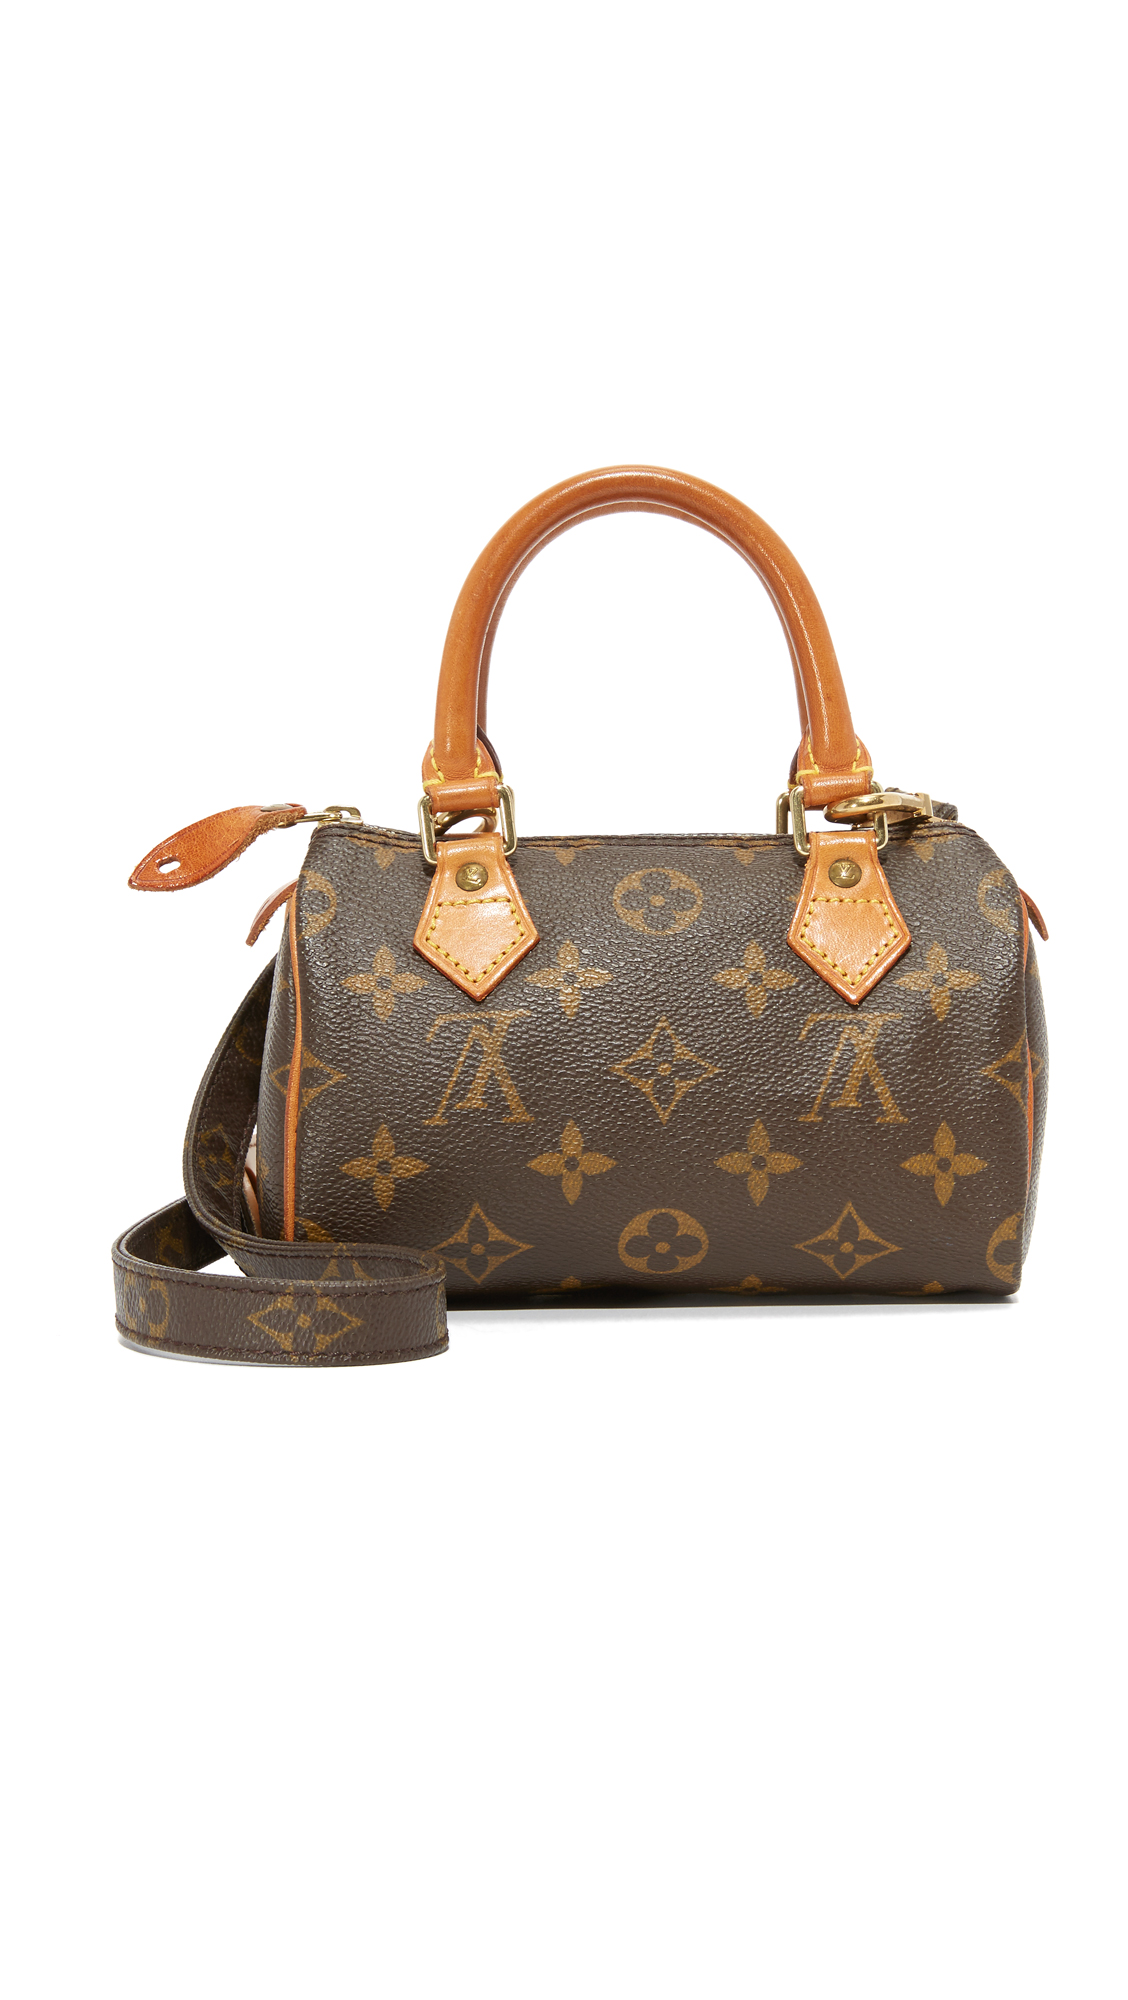 a35df2b4e0c88 What Goes Around Comes Around. Louis Vuitton Monogram Mini Speedy Bag ...